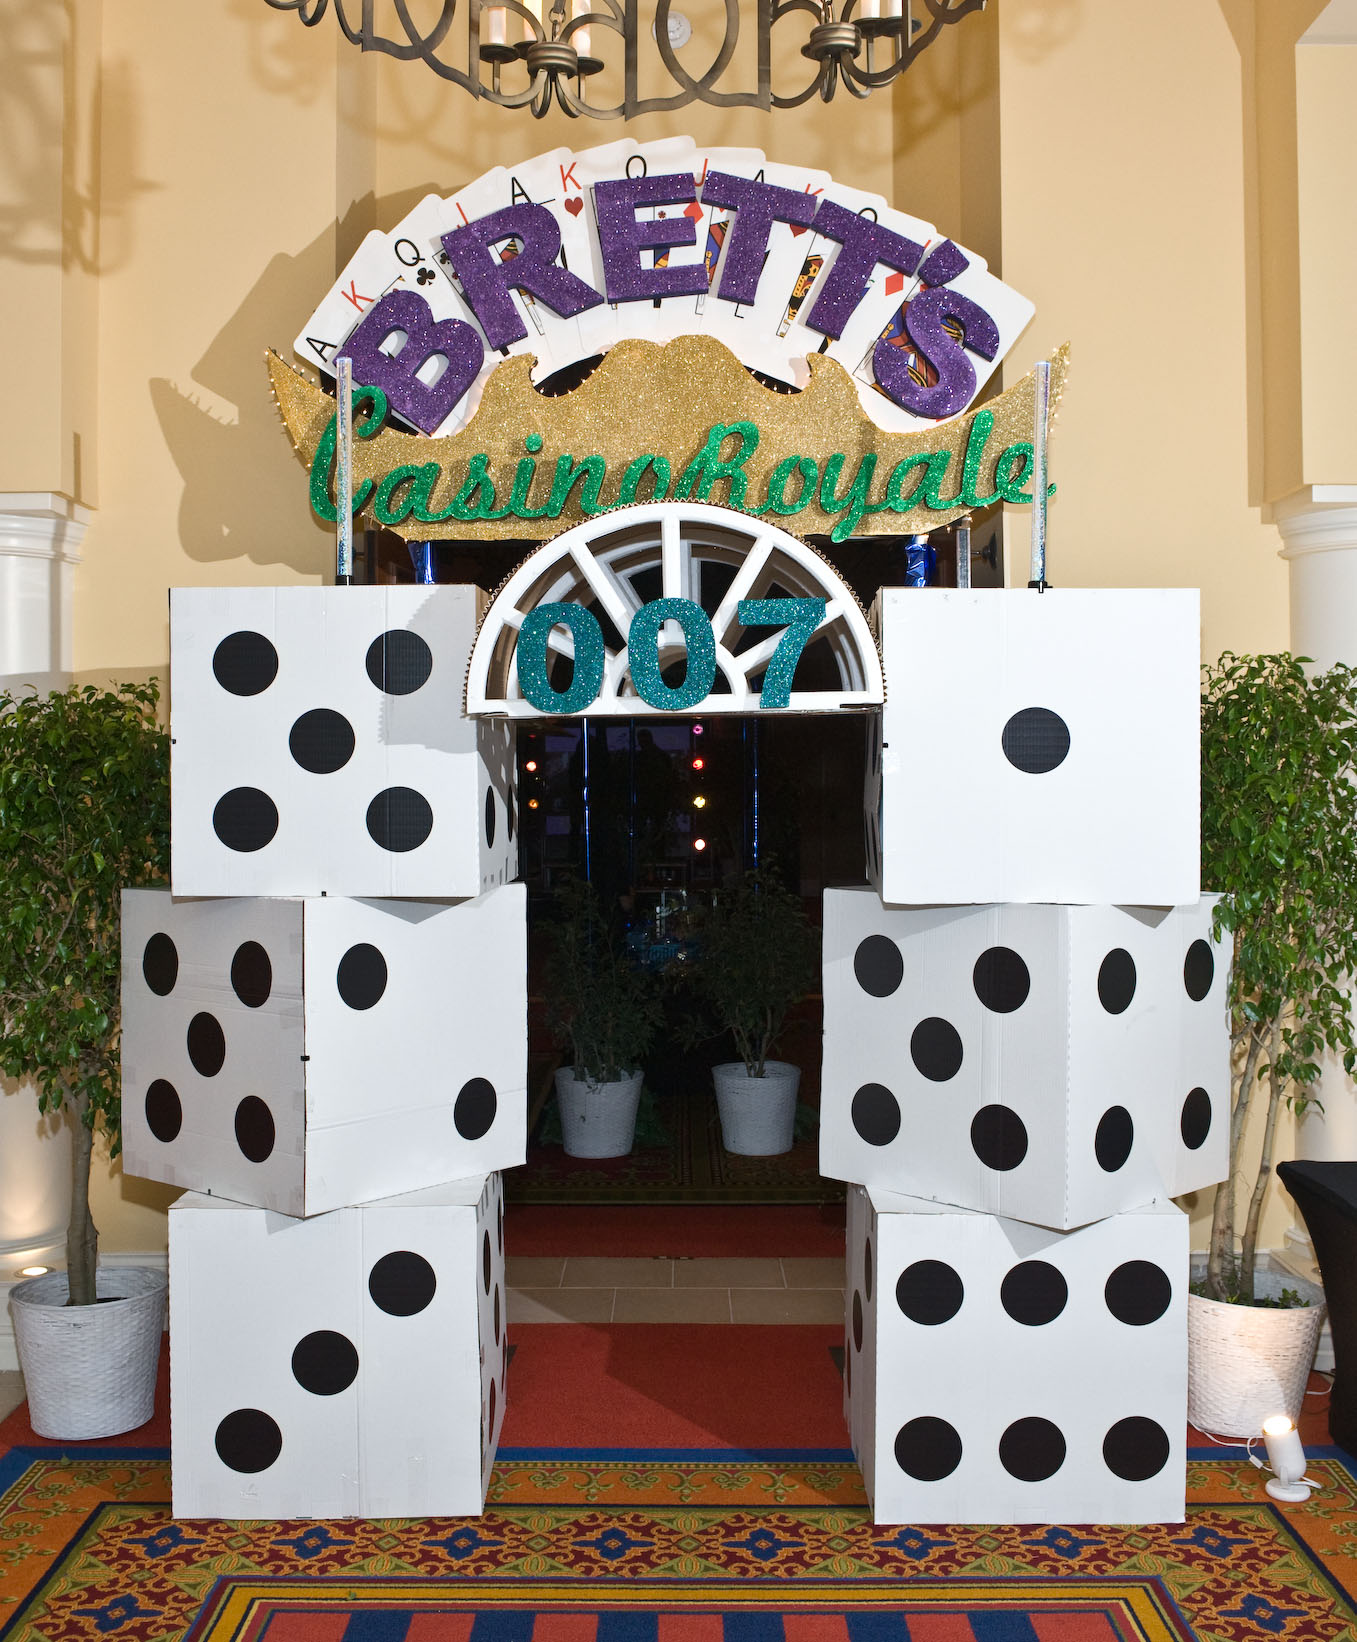 cardboard dice casino party entrance decor & Host a Casino Royale Party at Home - Dot Com Women